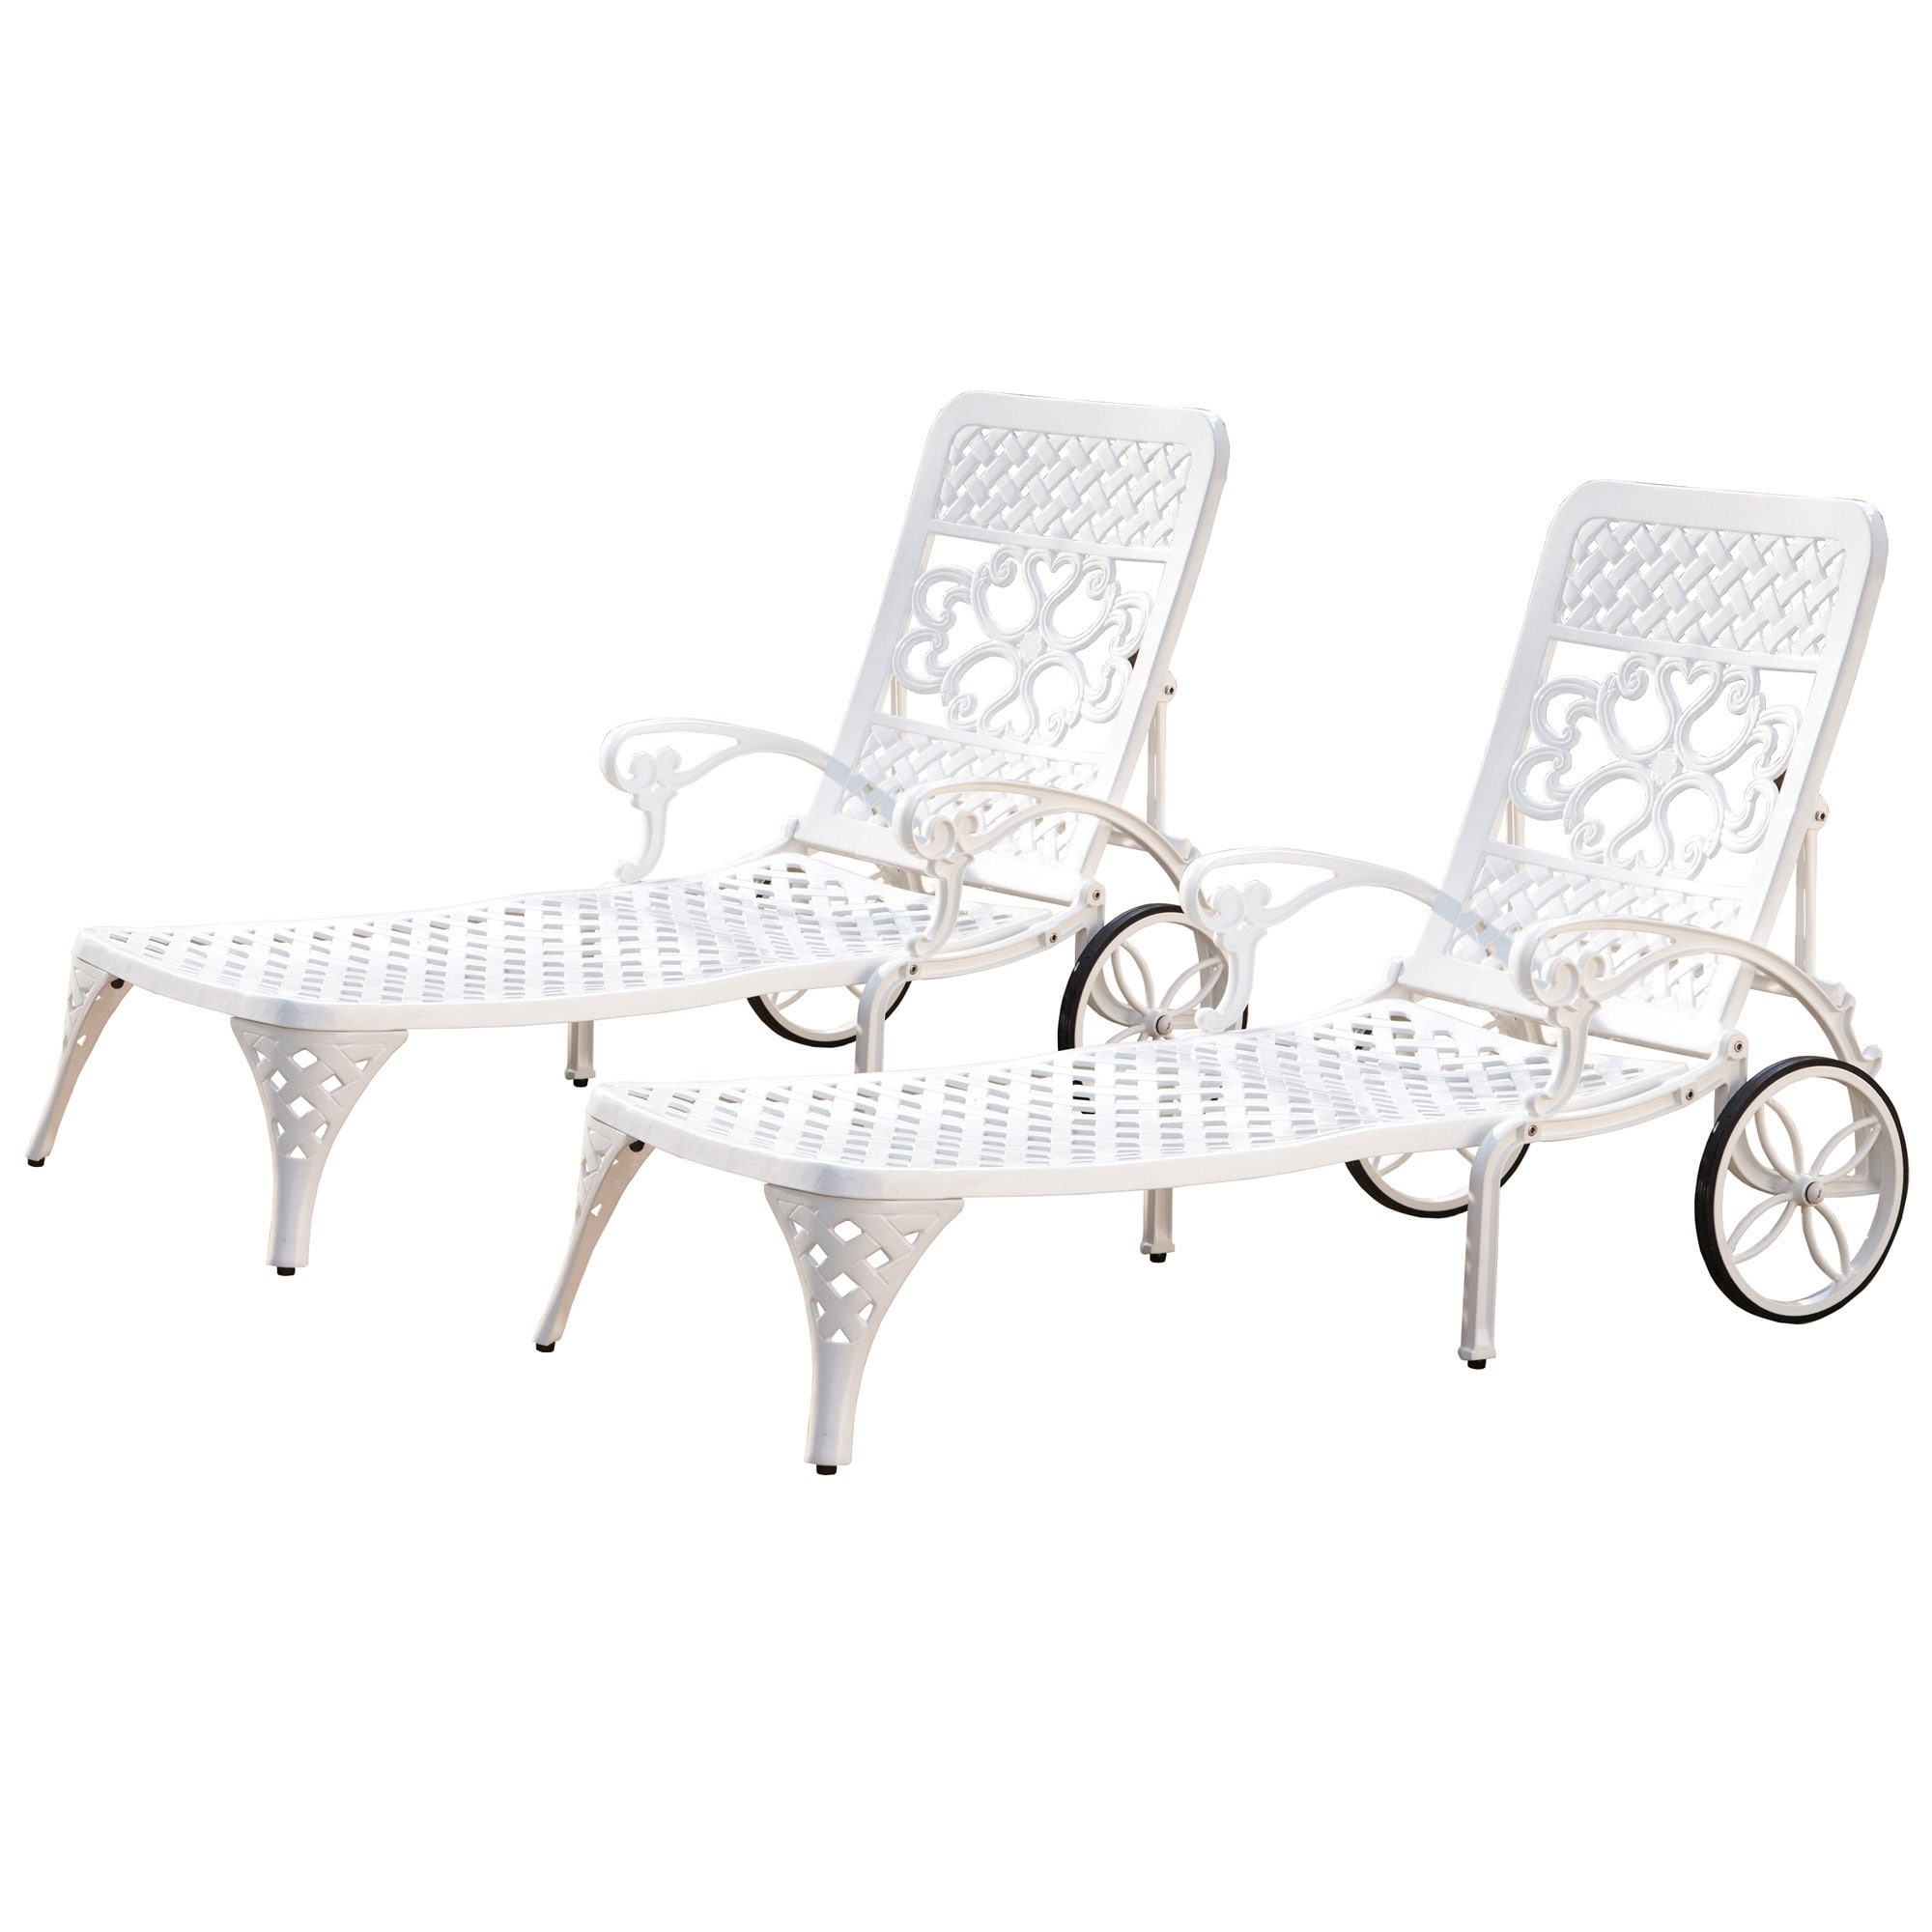 Overstock Outdoor Chaise Lounge Chairs Pertaining To Latest Gracewood Hollow Rasmussen Chaise Lounge Chairs (Set Of 2) – Free (View 10 of 15)